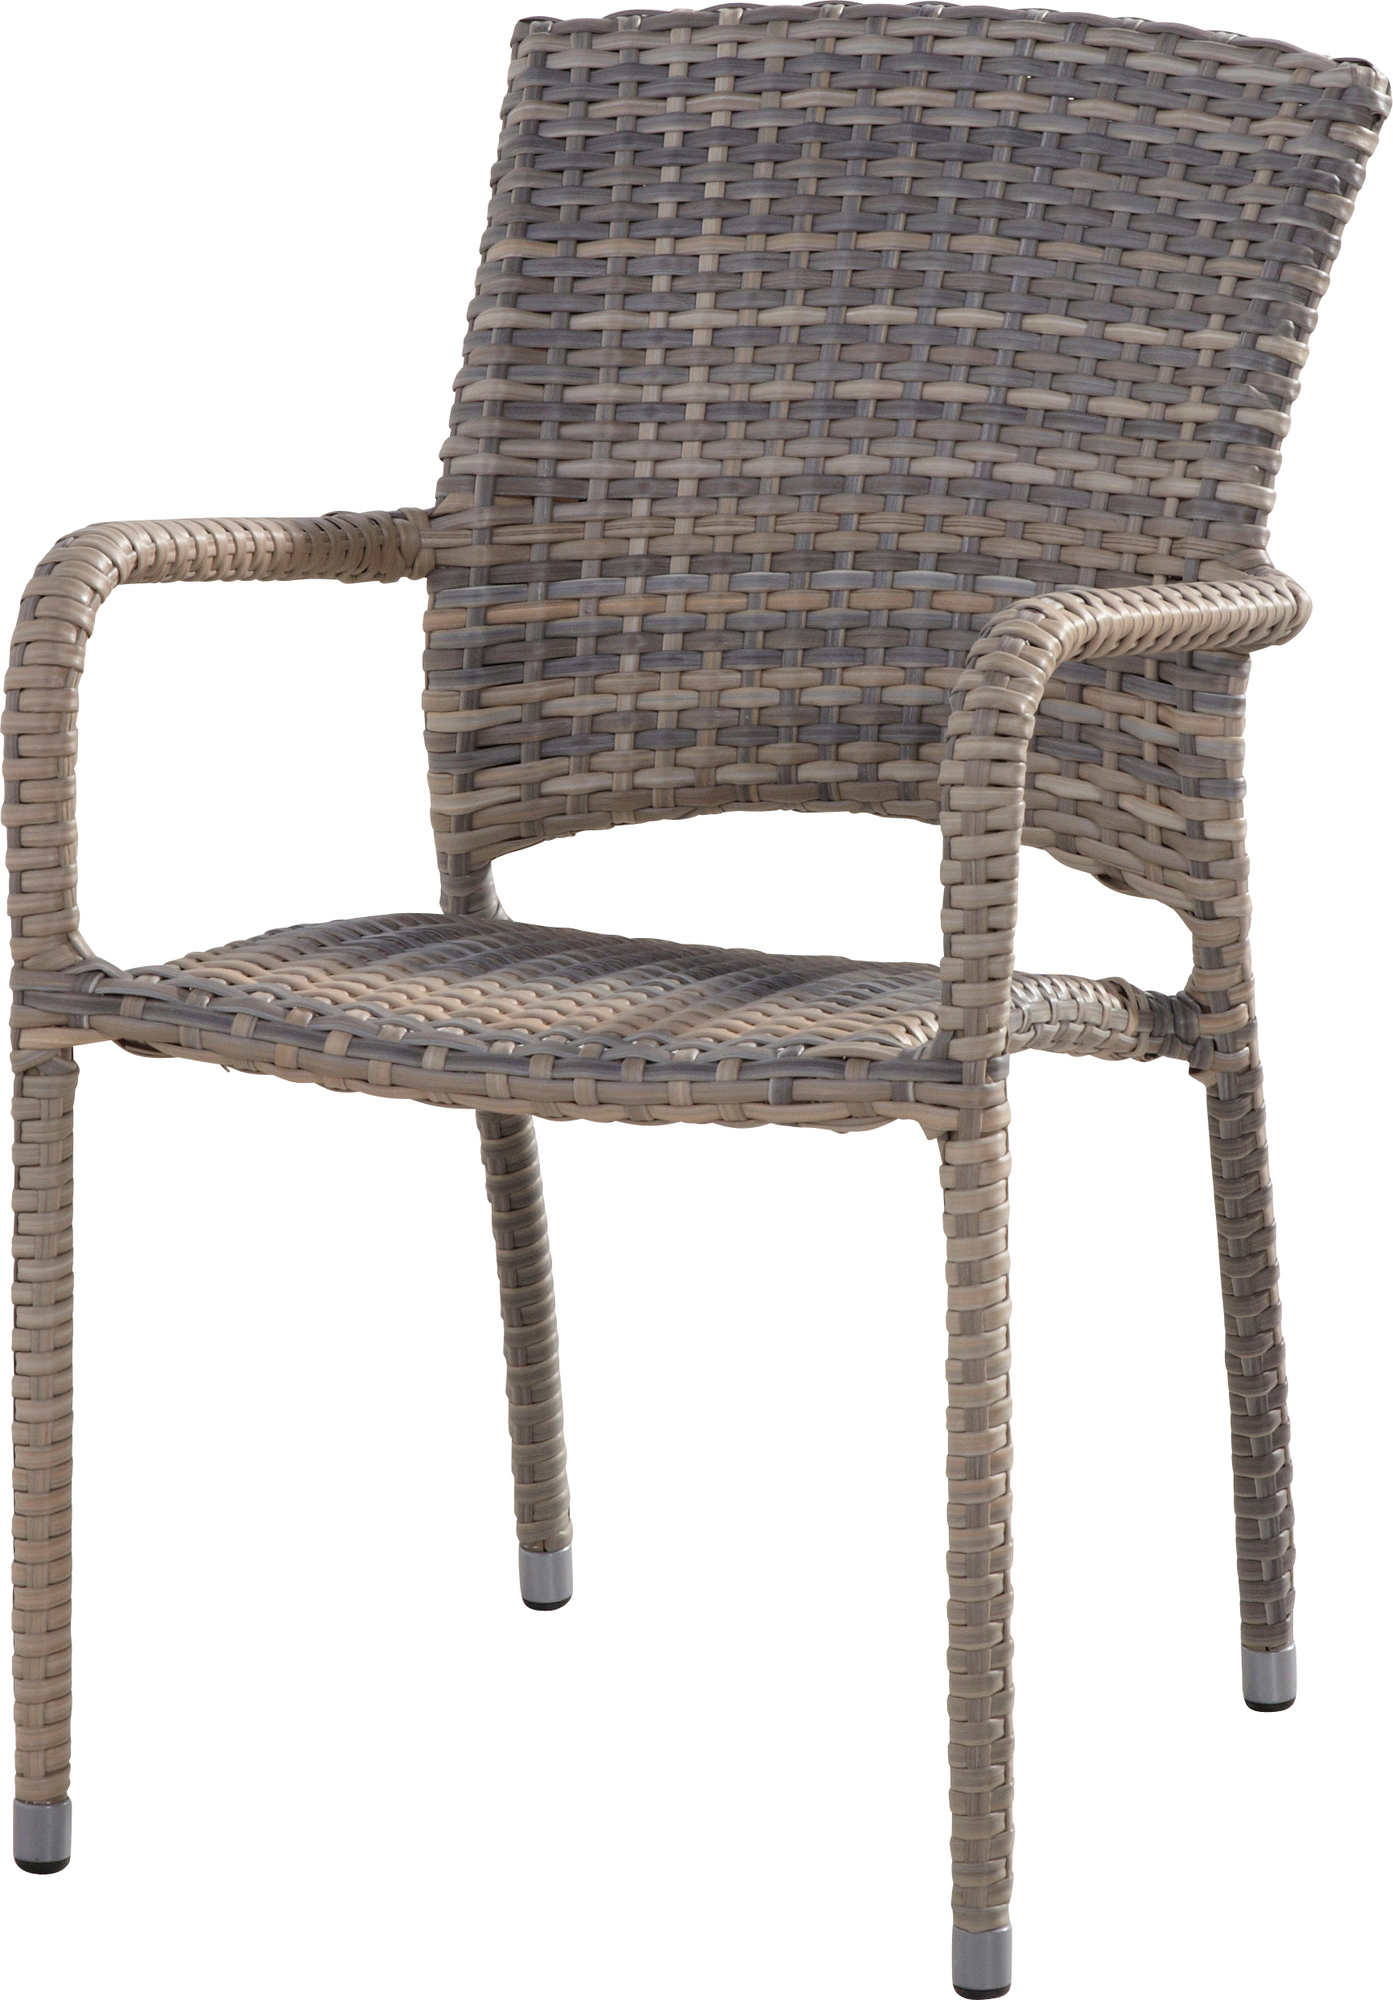 tuinstoel-Cafe lagun-4 seasons-wicker-taupe-stapelbaar-aluminium frame